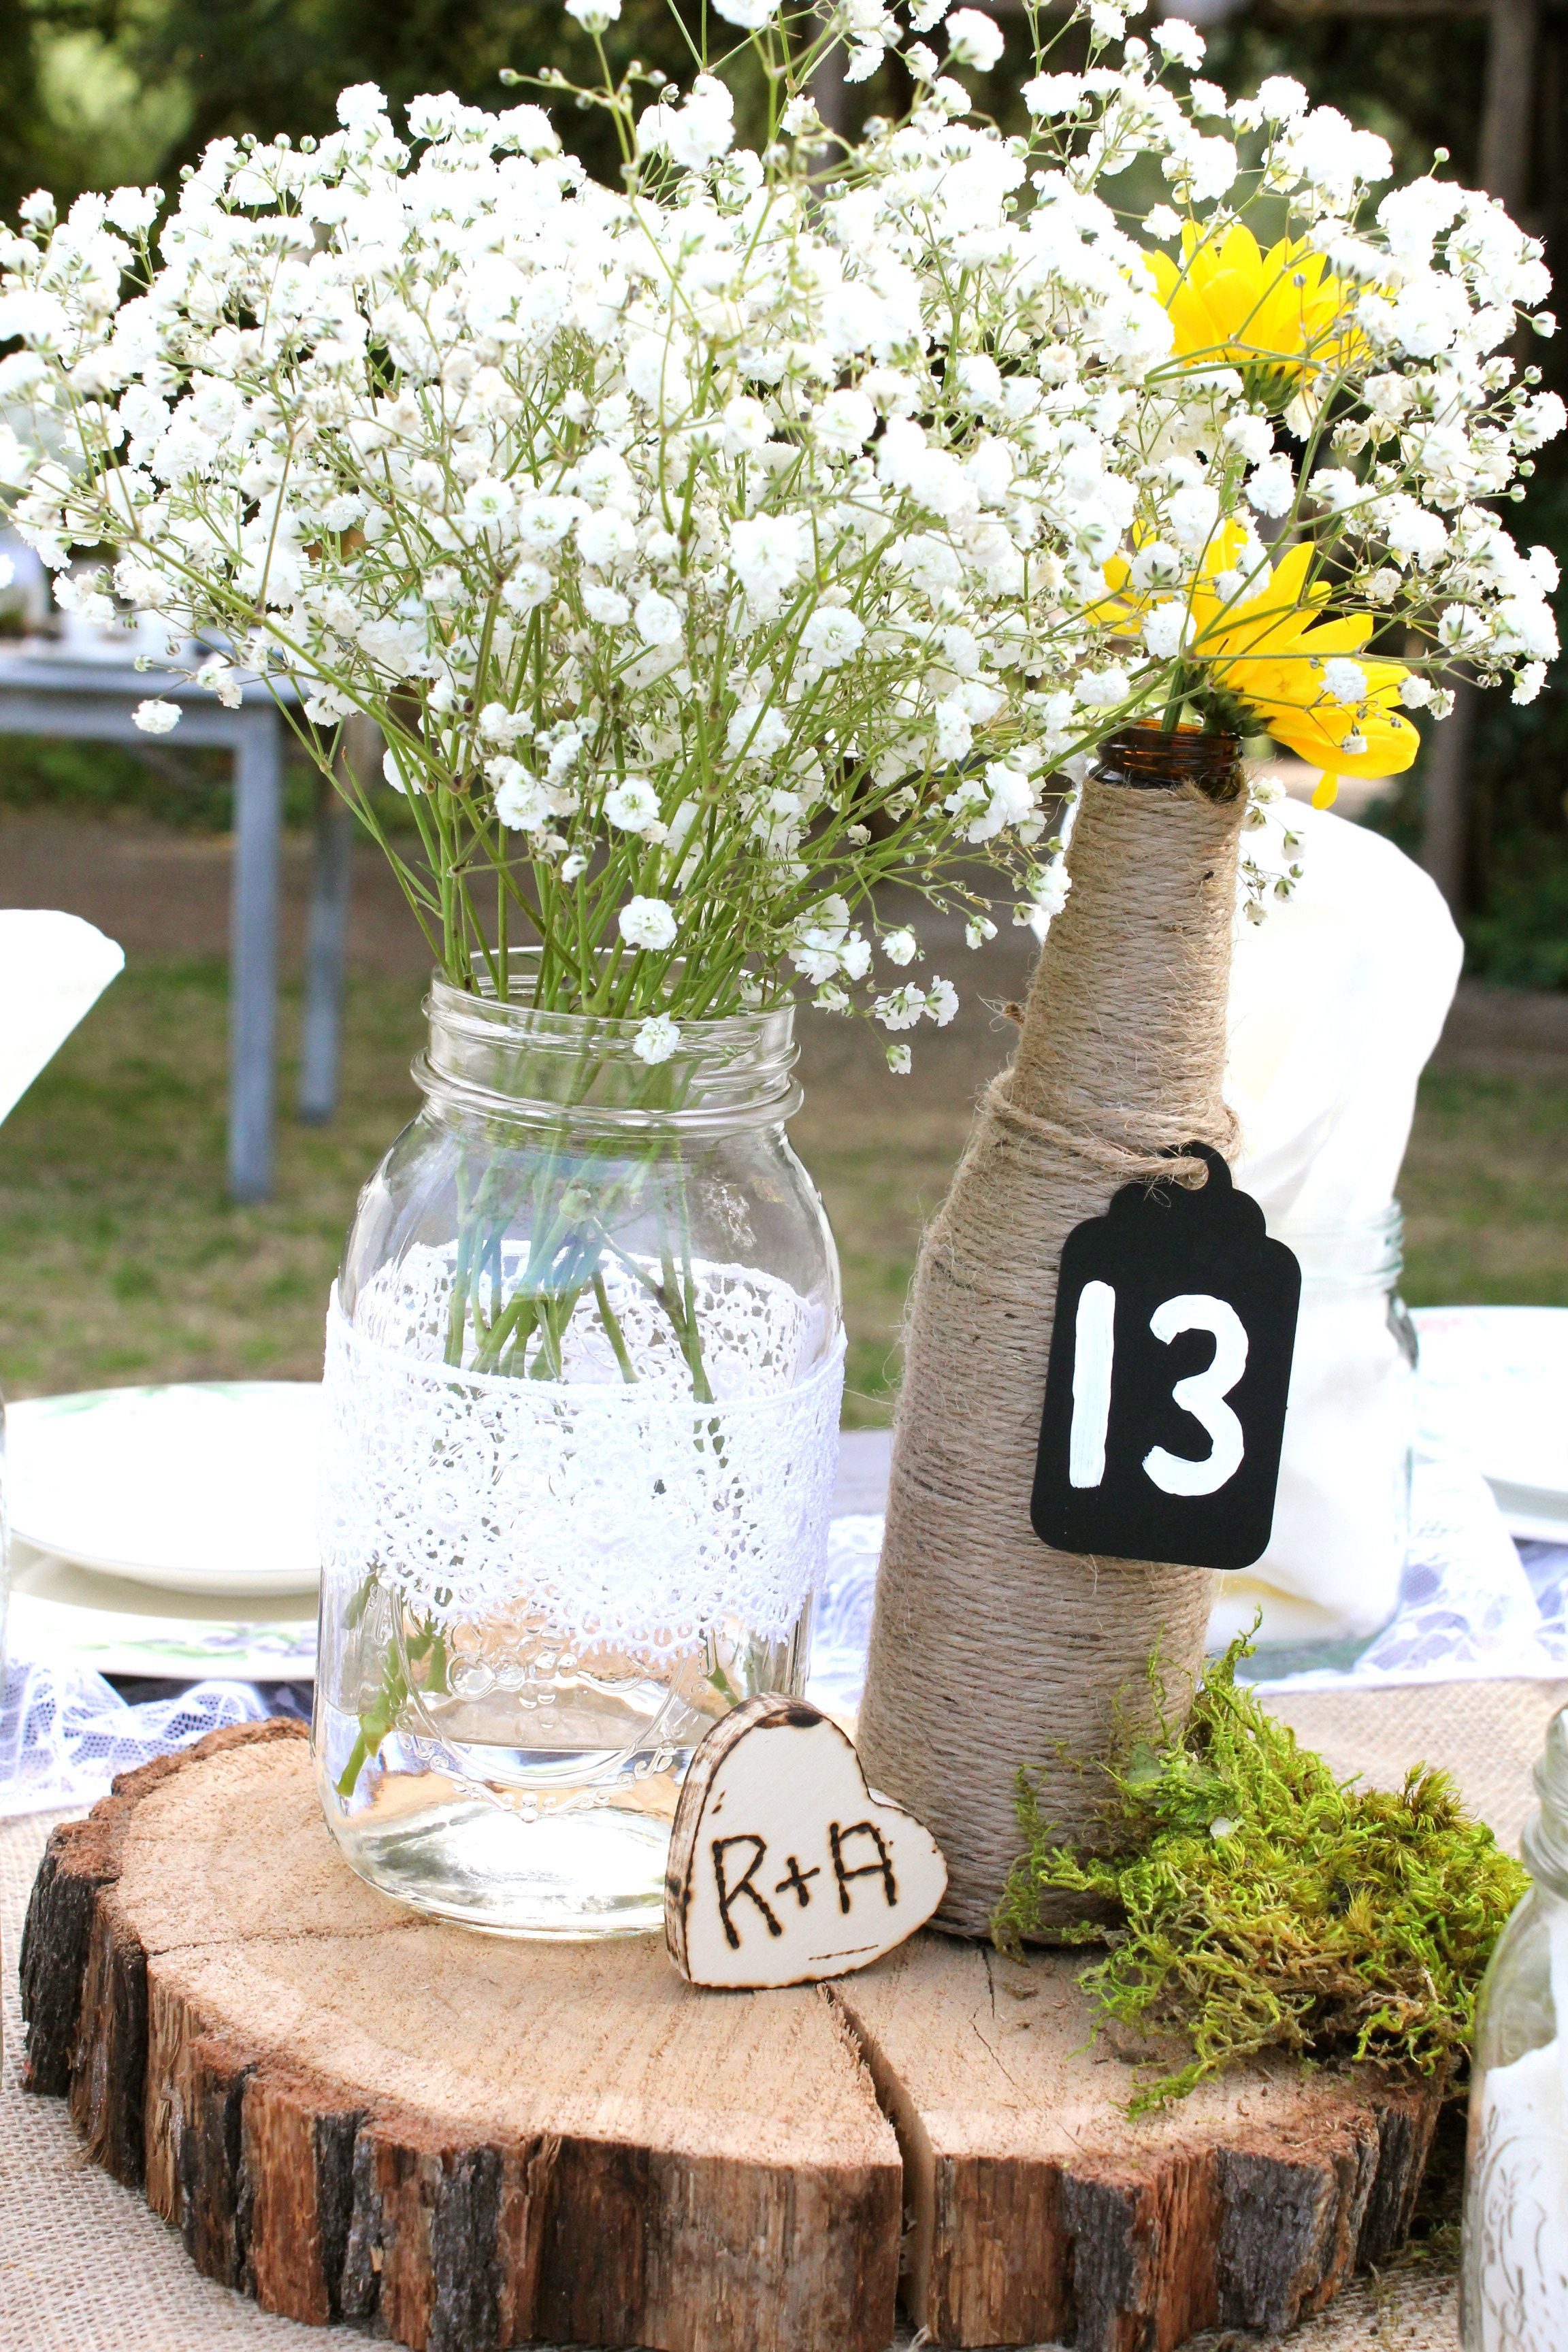 Picture Frame Vase Centerpiece Of Elegant Country Wedding Table Centerpieces Mason Jar and Twine Intended for Elegant Country Wedding Table Centerpieces Mason Jar and Twine Covered Bottle Vases